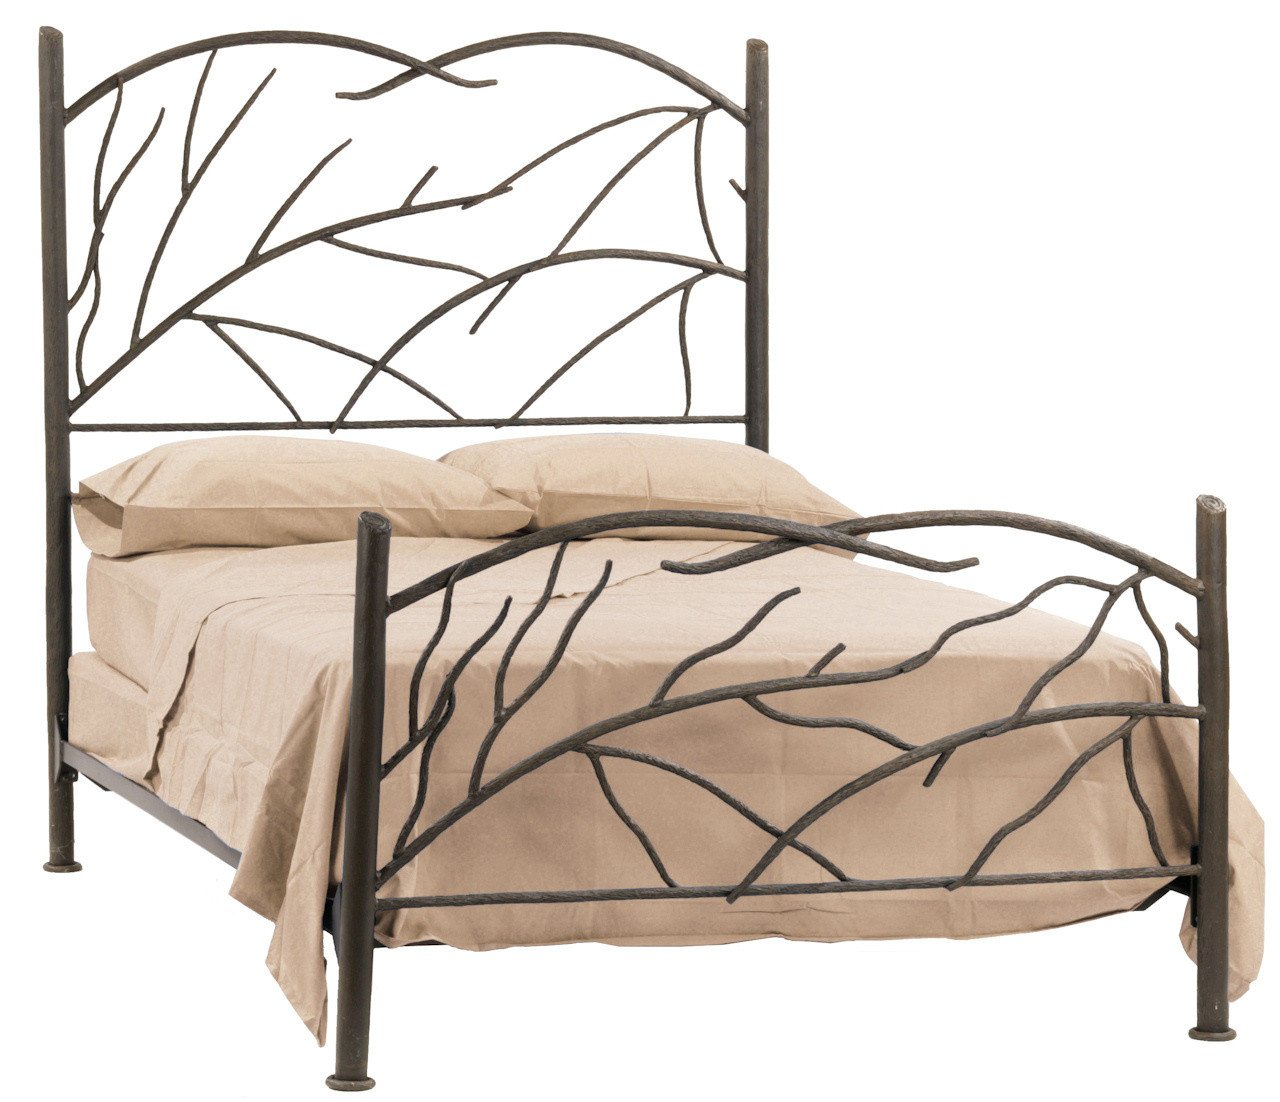 Bed Twin Bed Hand Rubbed Bronze Norfork Photo